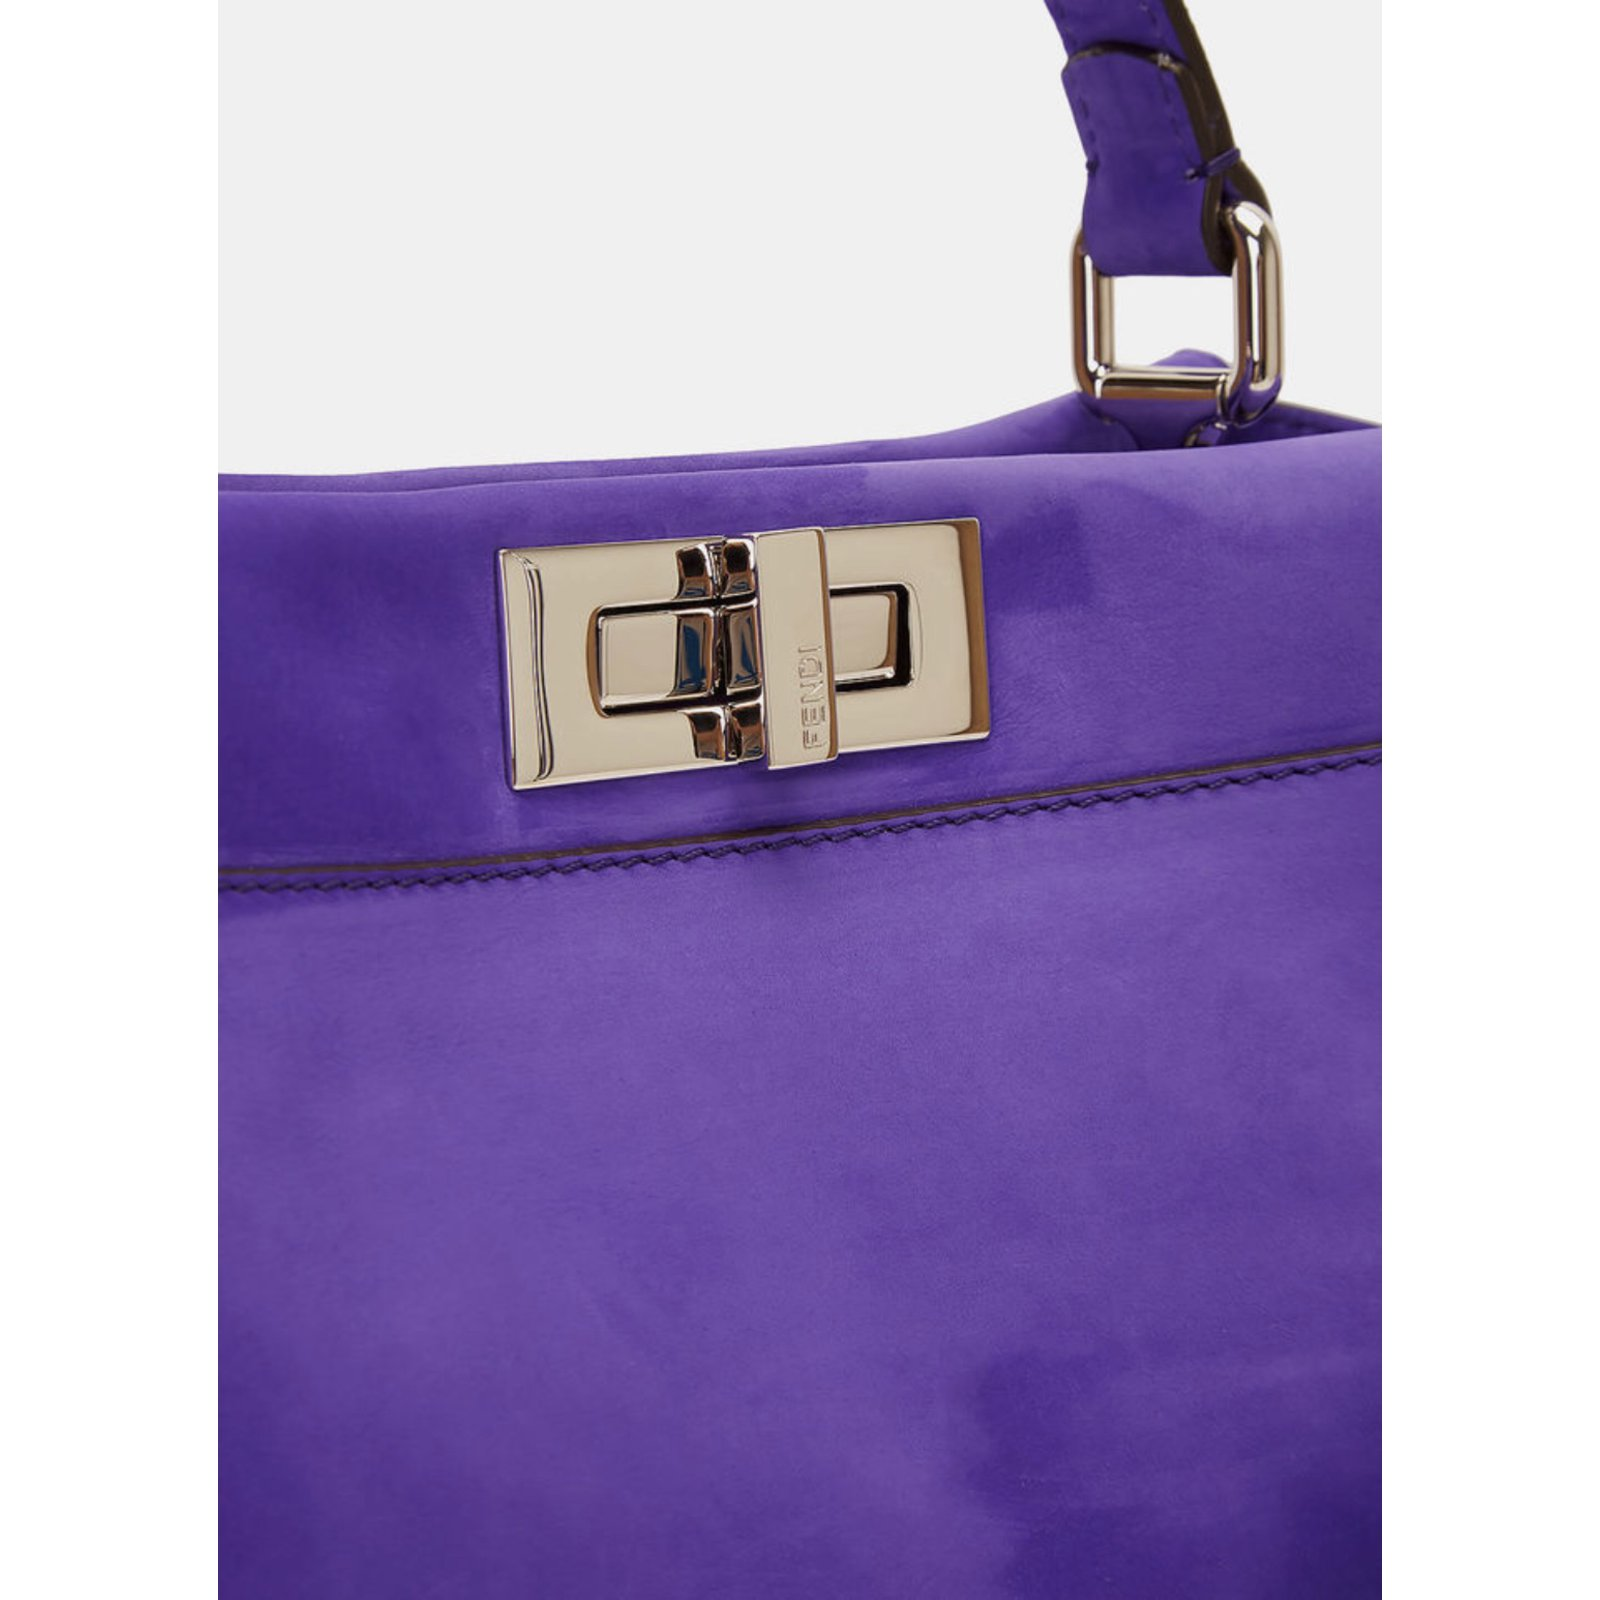 9369b431020 Fendi Peekaboo regular size Handbags Suede Purple ref.80776 - Joli Closet